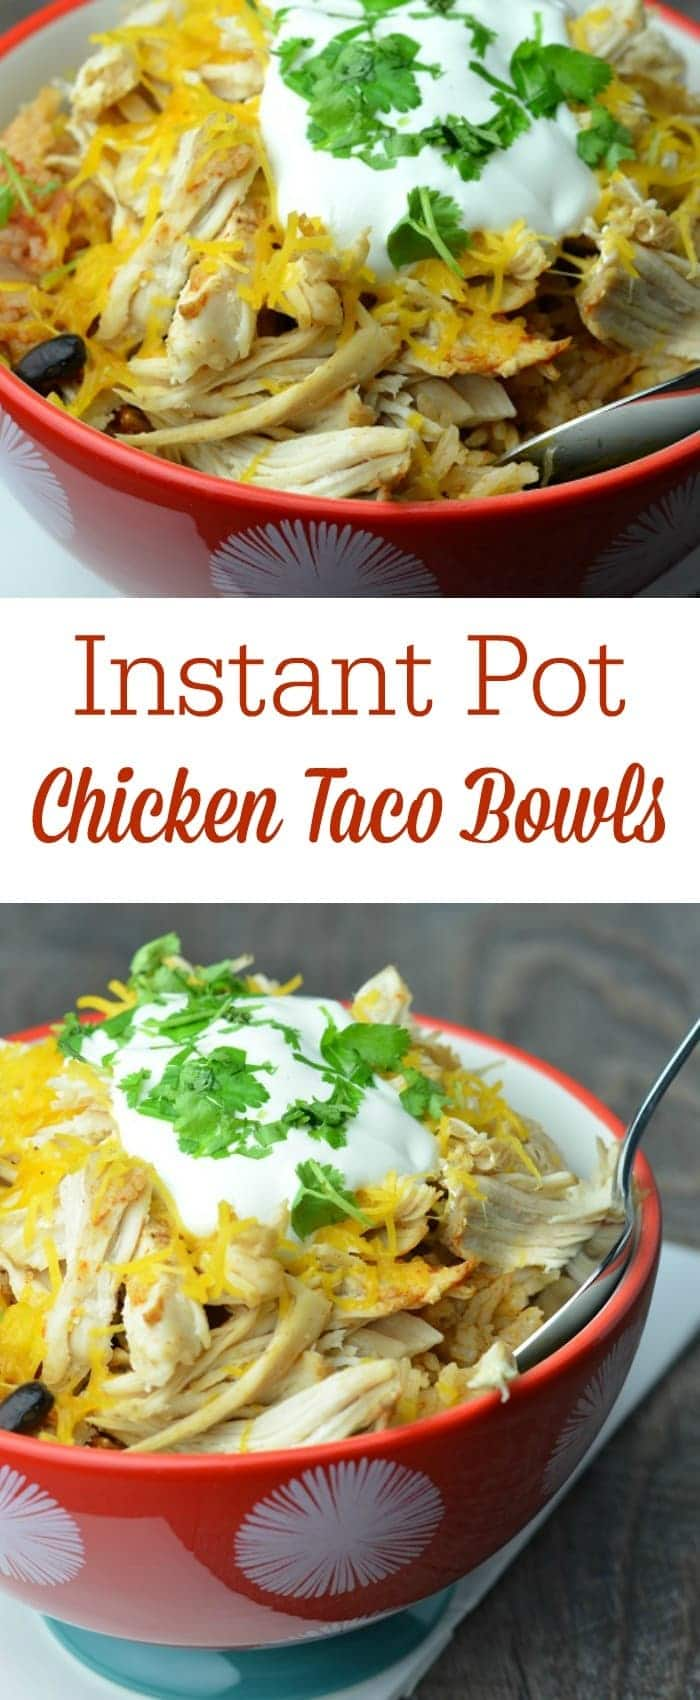 My family loves these Instant Pot Chicken Taco Bowls. Just a few minutes to prep and half an hour to cook. So easy and delicious! #instantpot #pressurecooker #chicken #easydinner